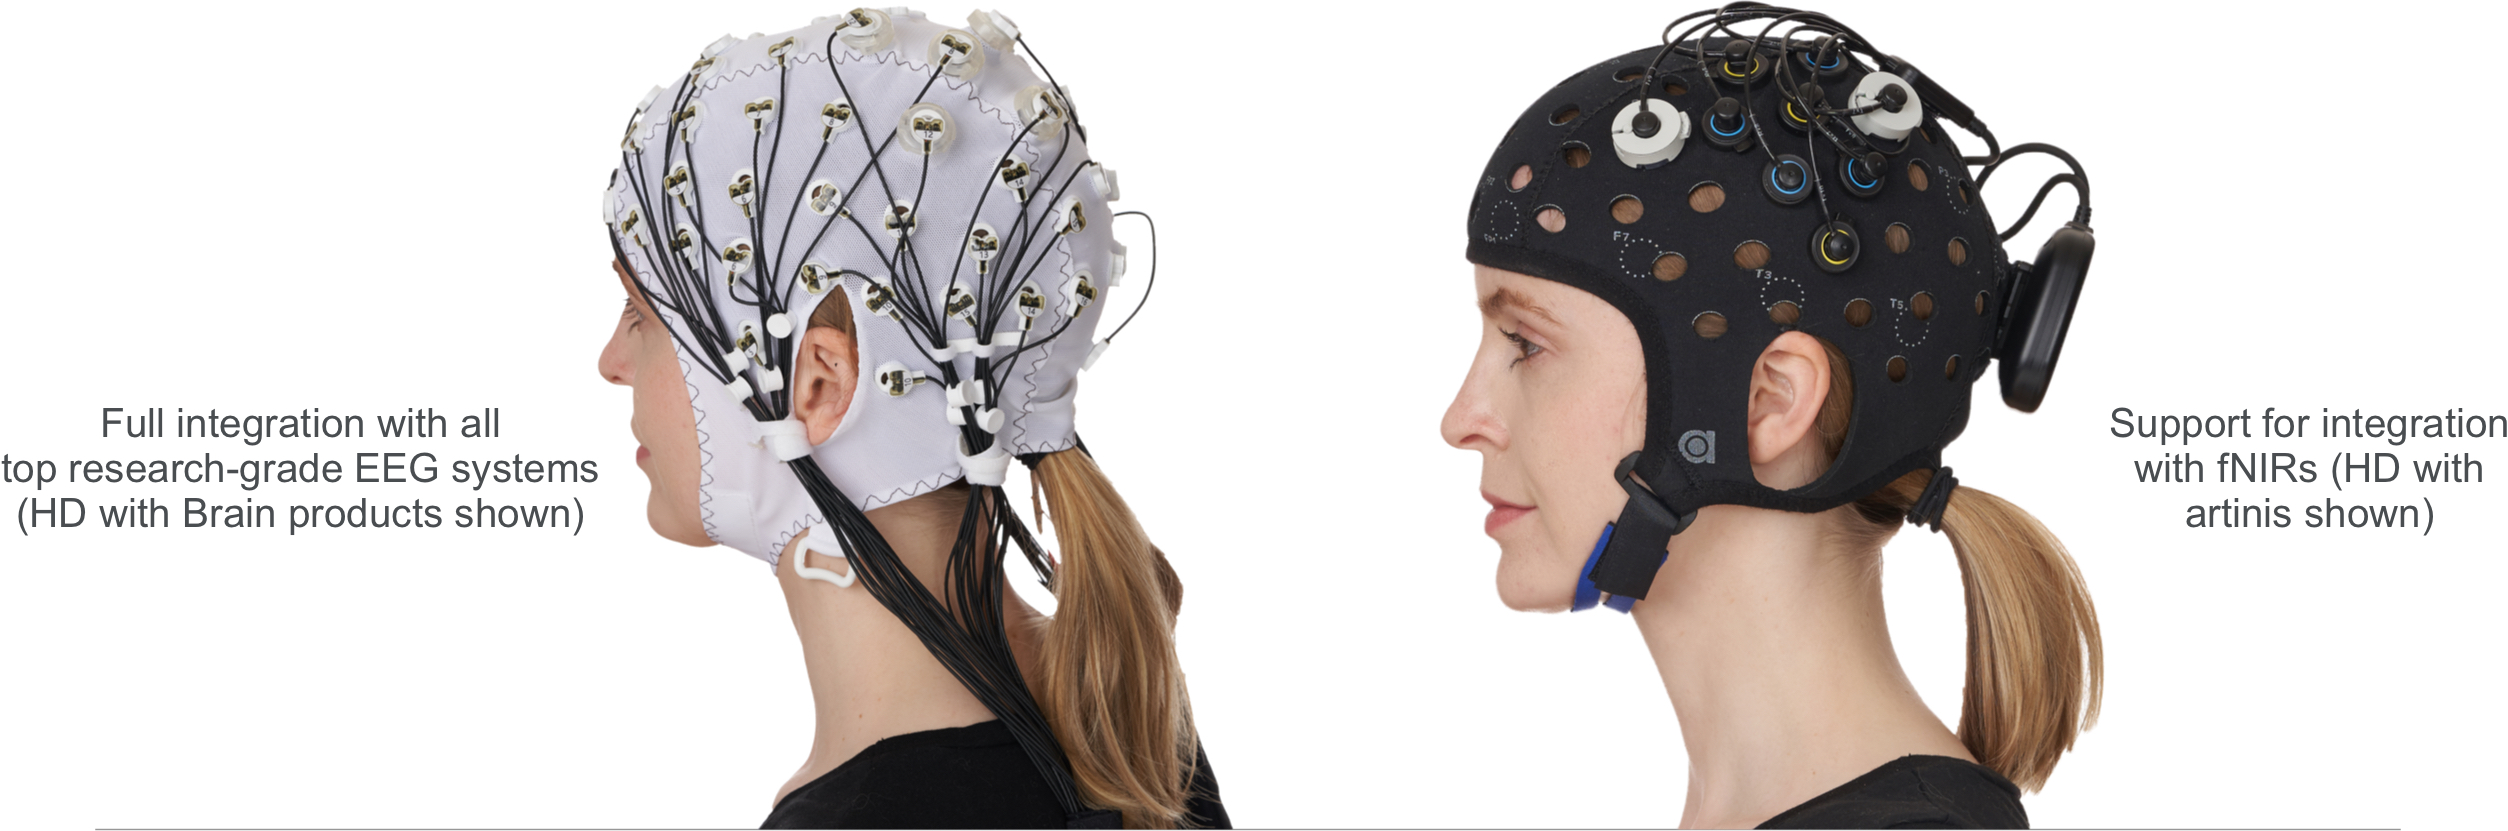 MxN-33 Brain Products EEG & MxN-33 Artinis fNIRS